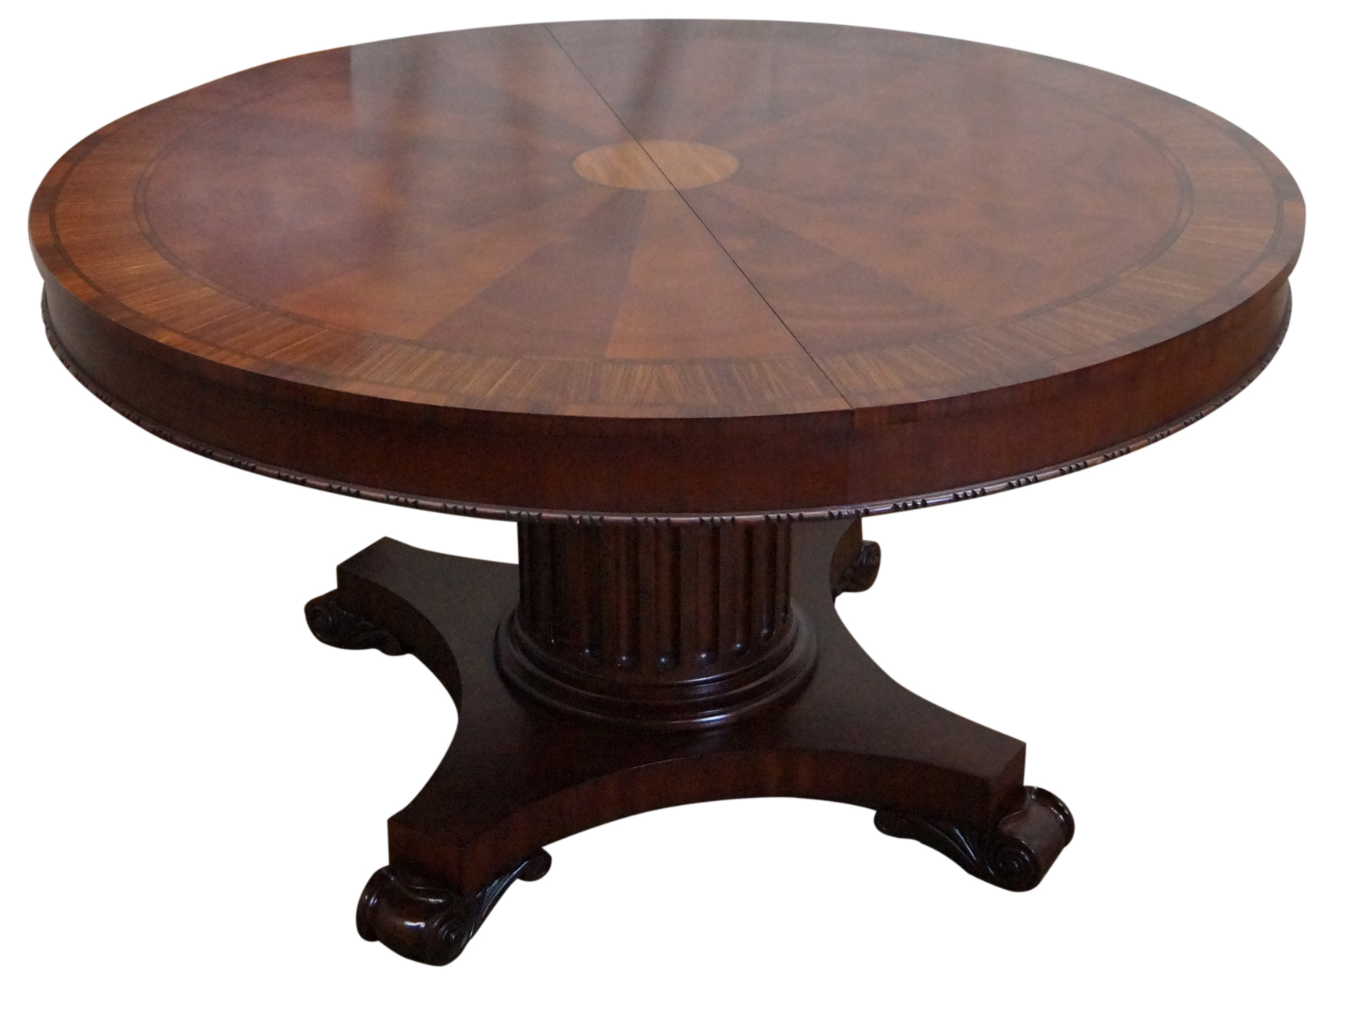 Ethan Allen Round Inlay Dining Table Chairish : 120f7e8e de06 4a1c 9318 703e2191ddf8aspectfitampwidth640ampheight640 from www.chairish.com size 640 x 640 jpeg 26kB